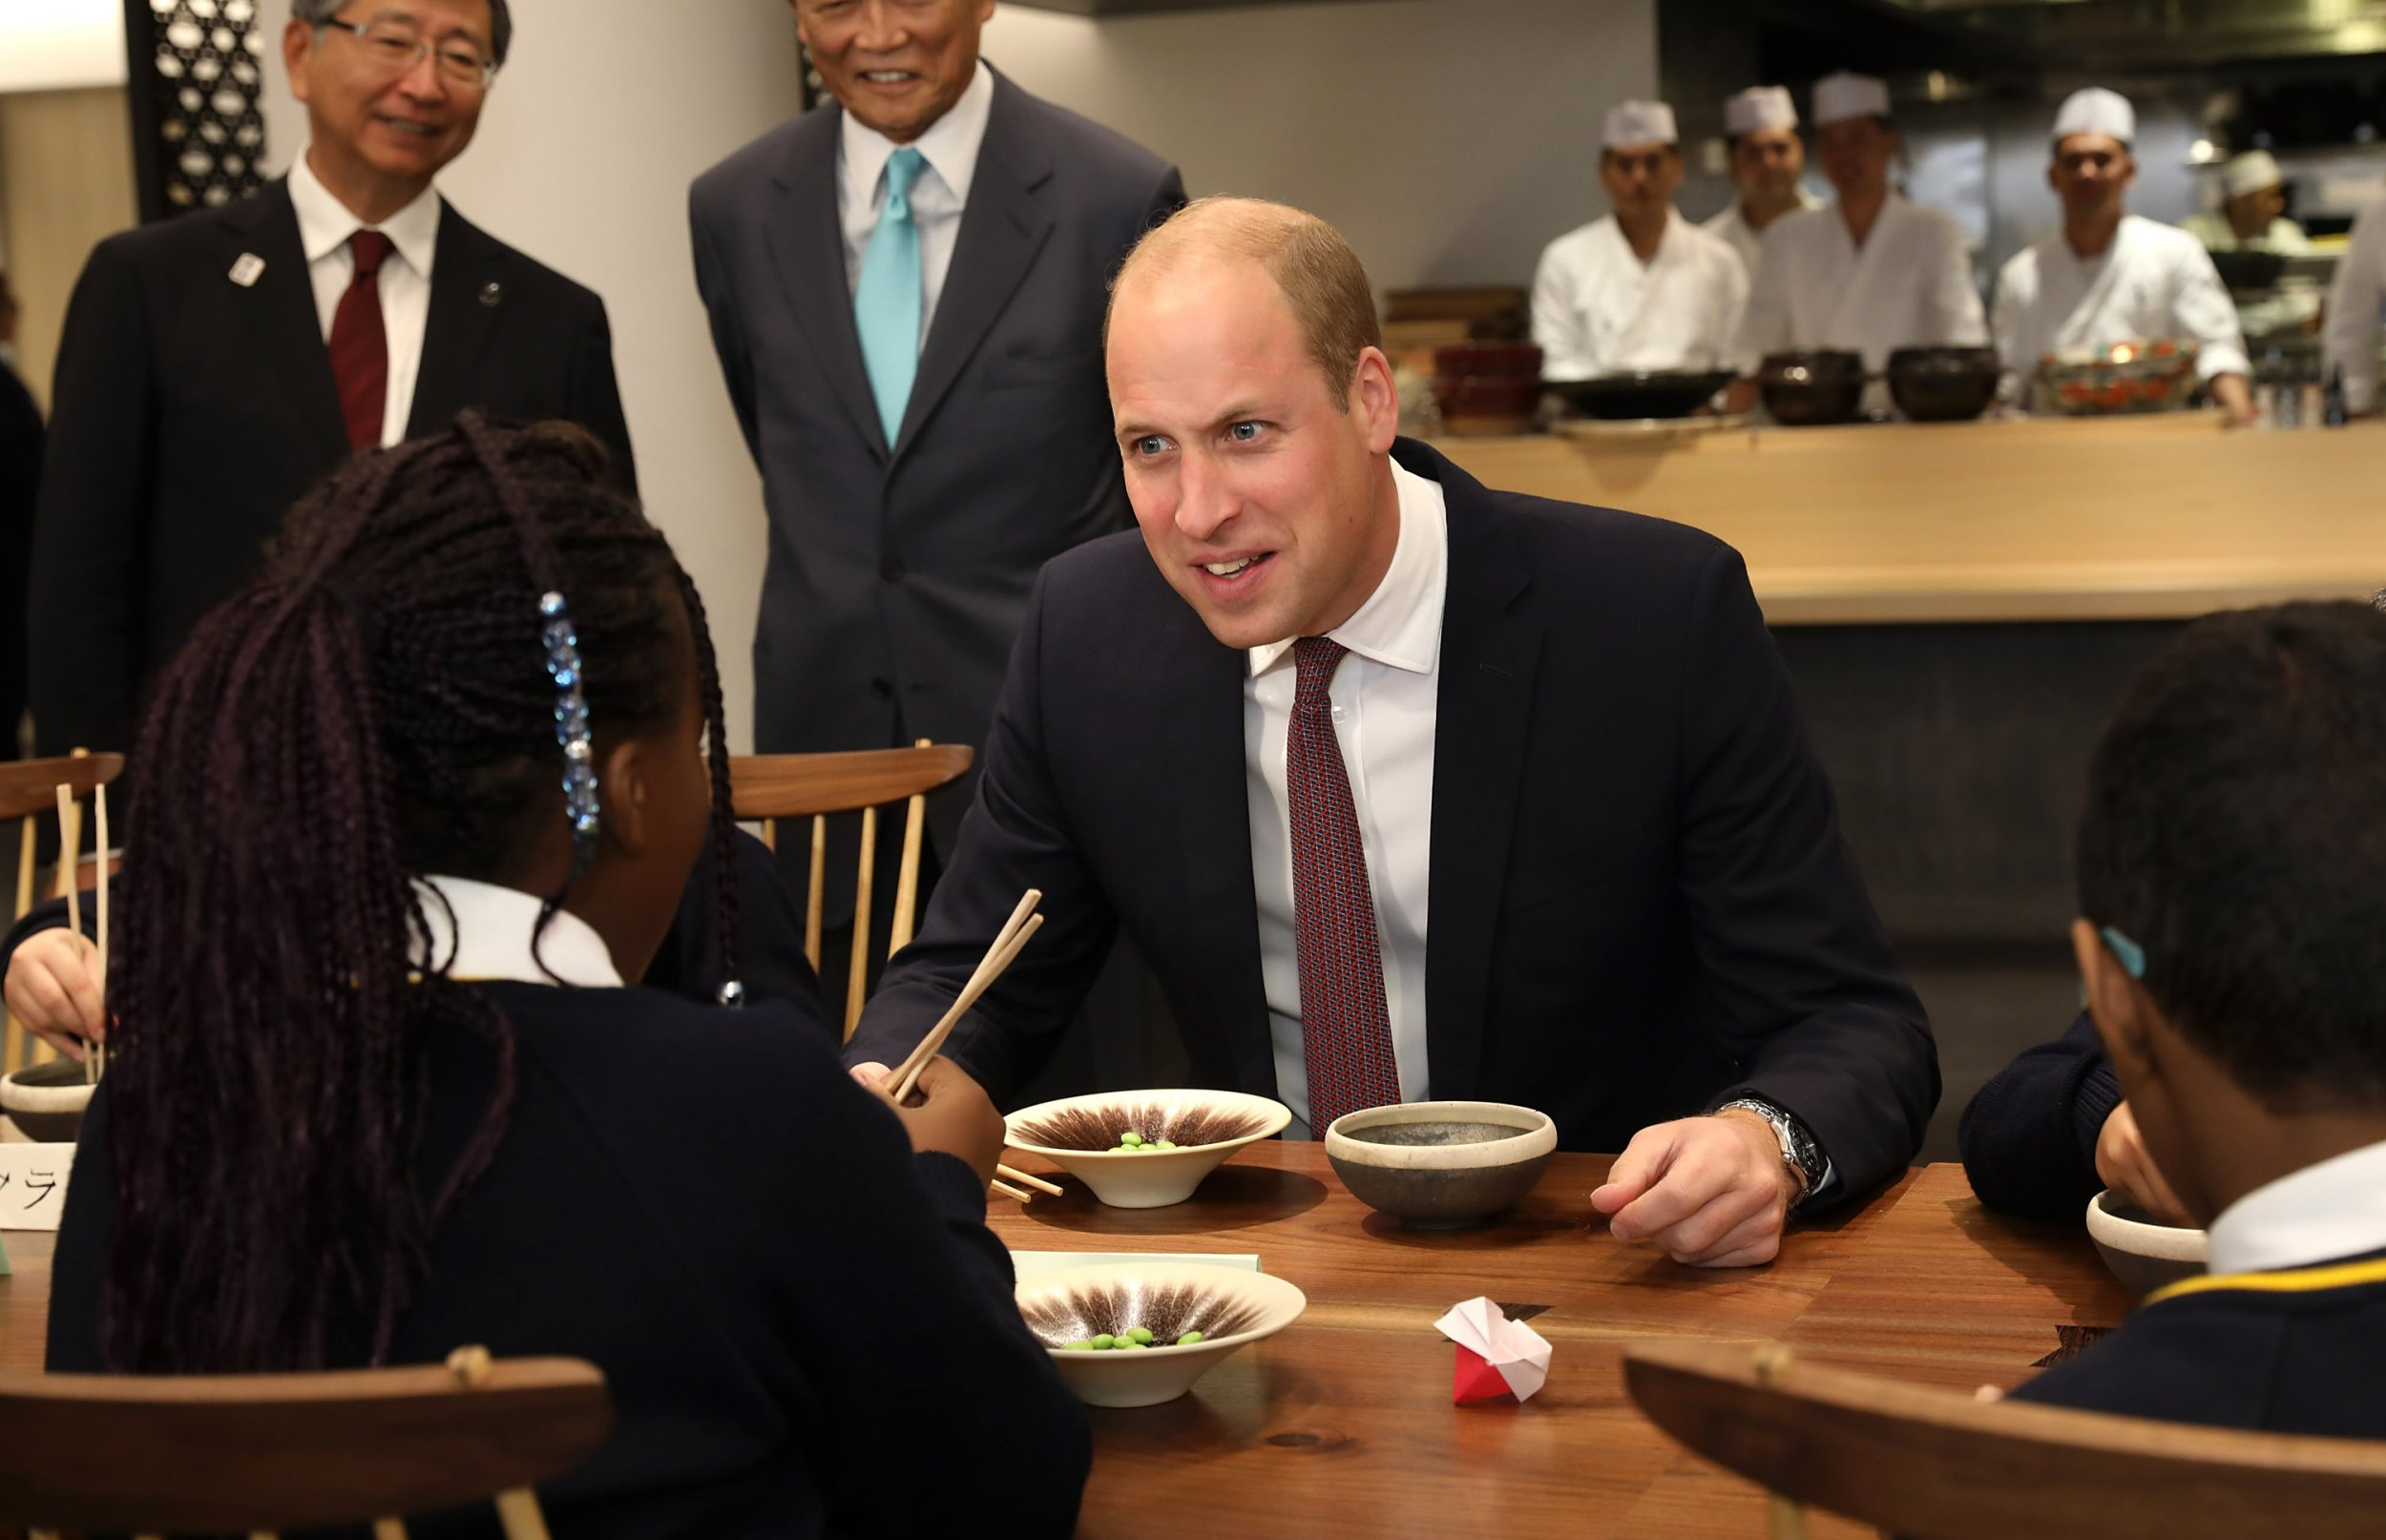 Duke of Cambridge joins in with local school children from St Cuthbert with St Matthias CE Primary School learning the art of using chopsticks during The Official Opening of Japan House London, the new Cultural Home of Japan in the UK. PRESS ASSOCIATION Photo. Picture date: Thursday September 13, 2018. See PA story ROYAL Japan. Photo credit should read: Tim P. Whitby/PA Wire